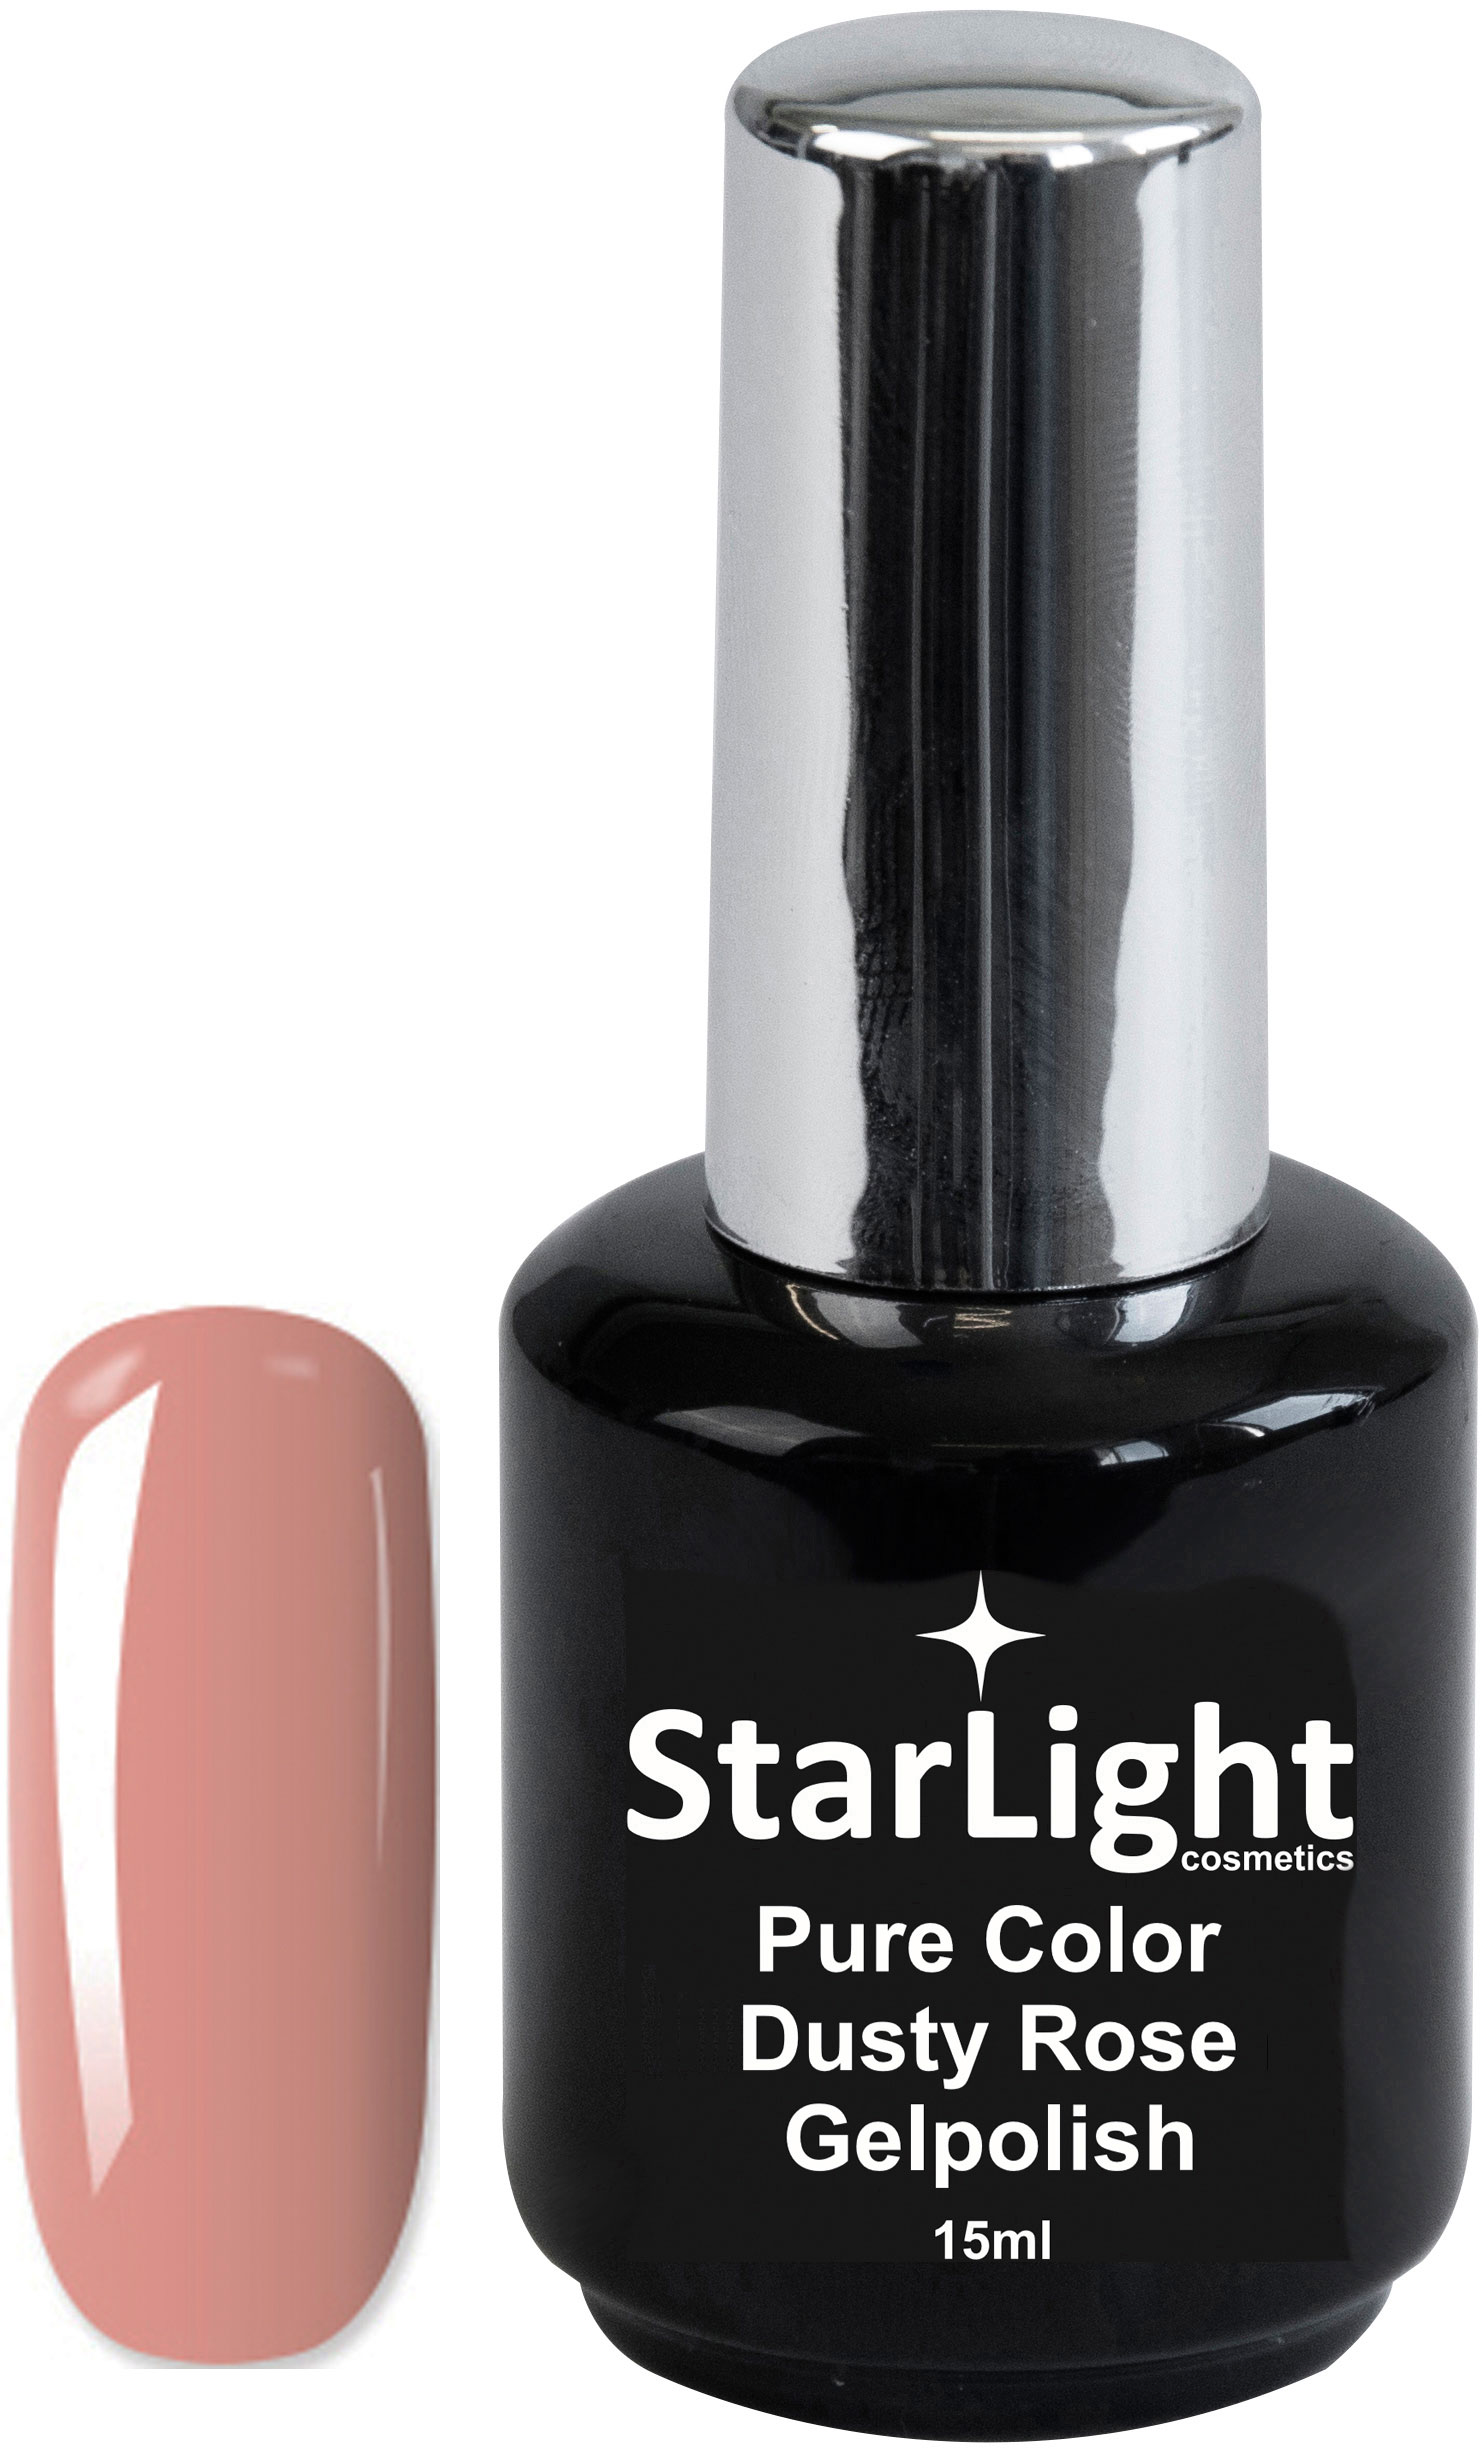 Naglar Gelpolish Pure Color Dusty Rose - 15 ml